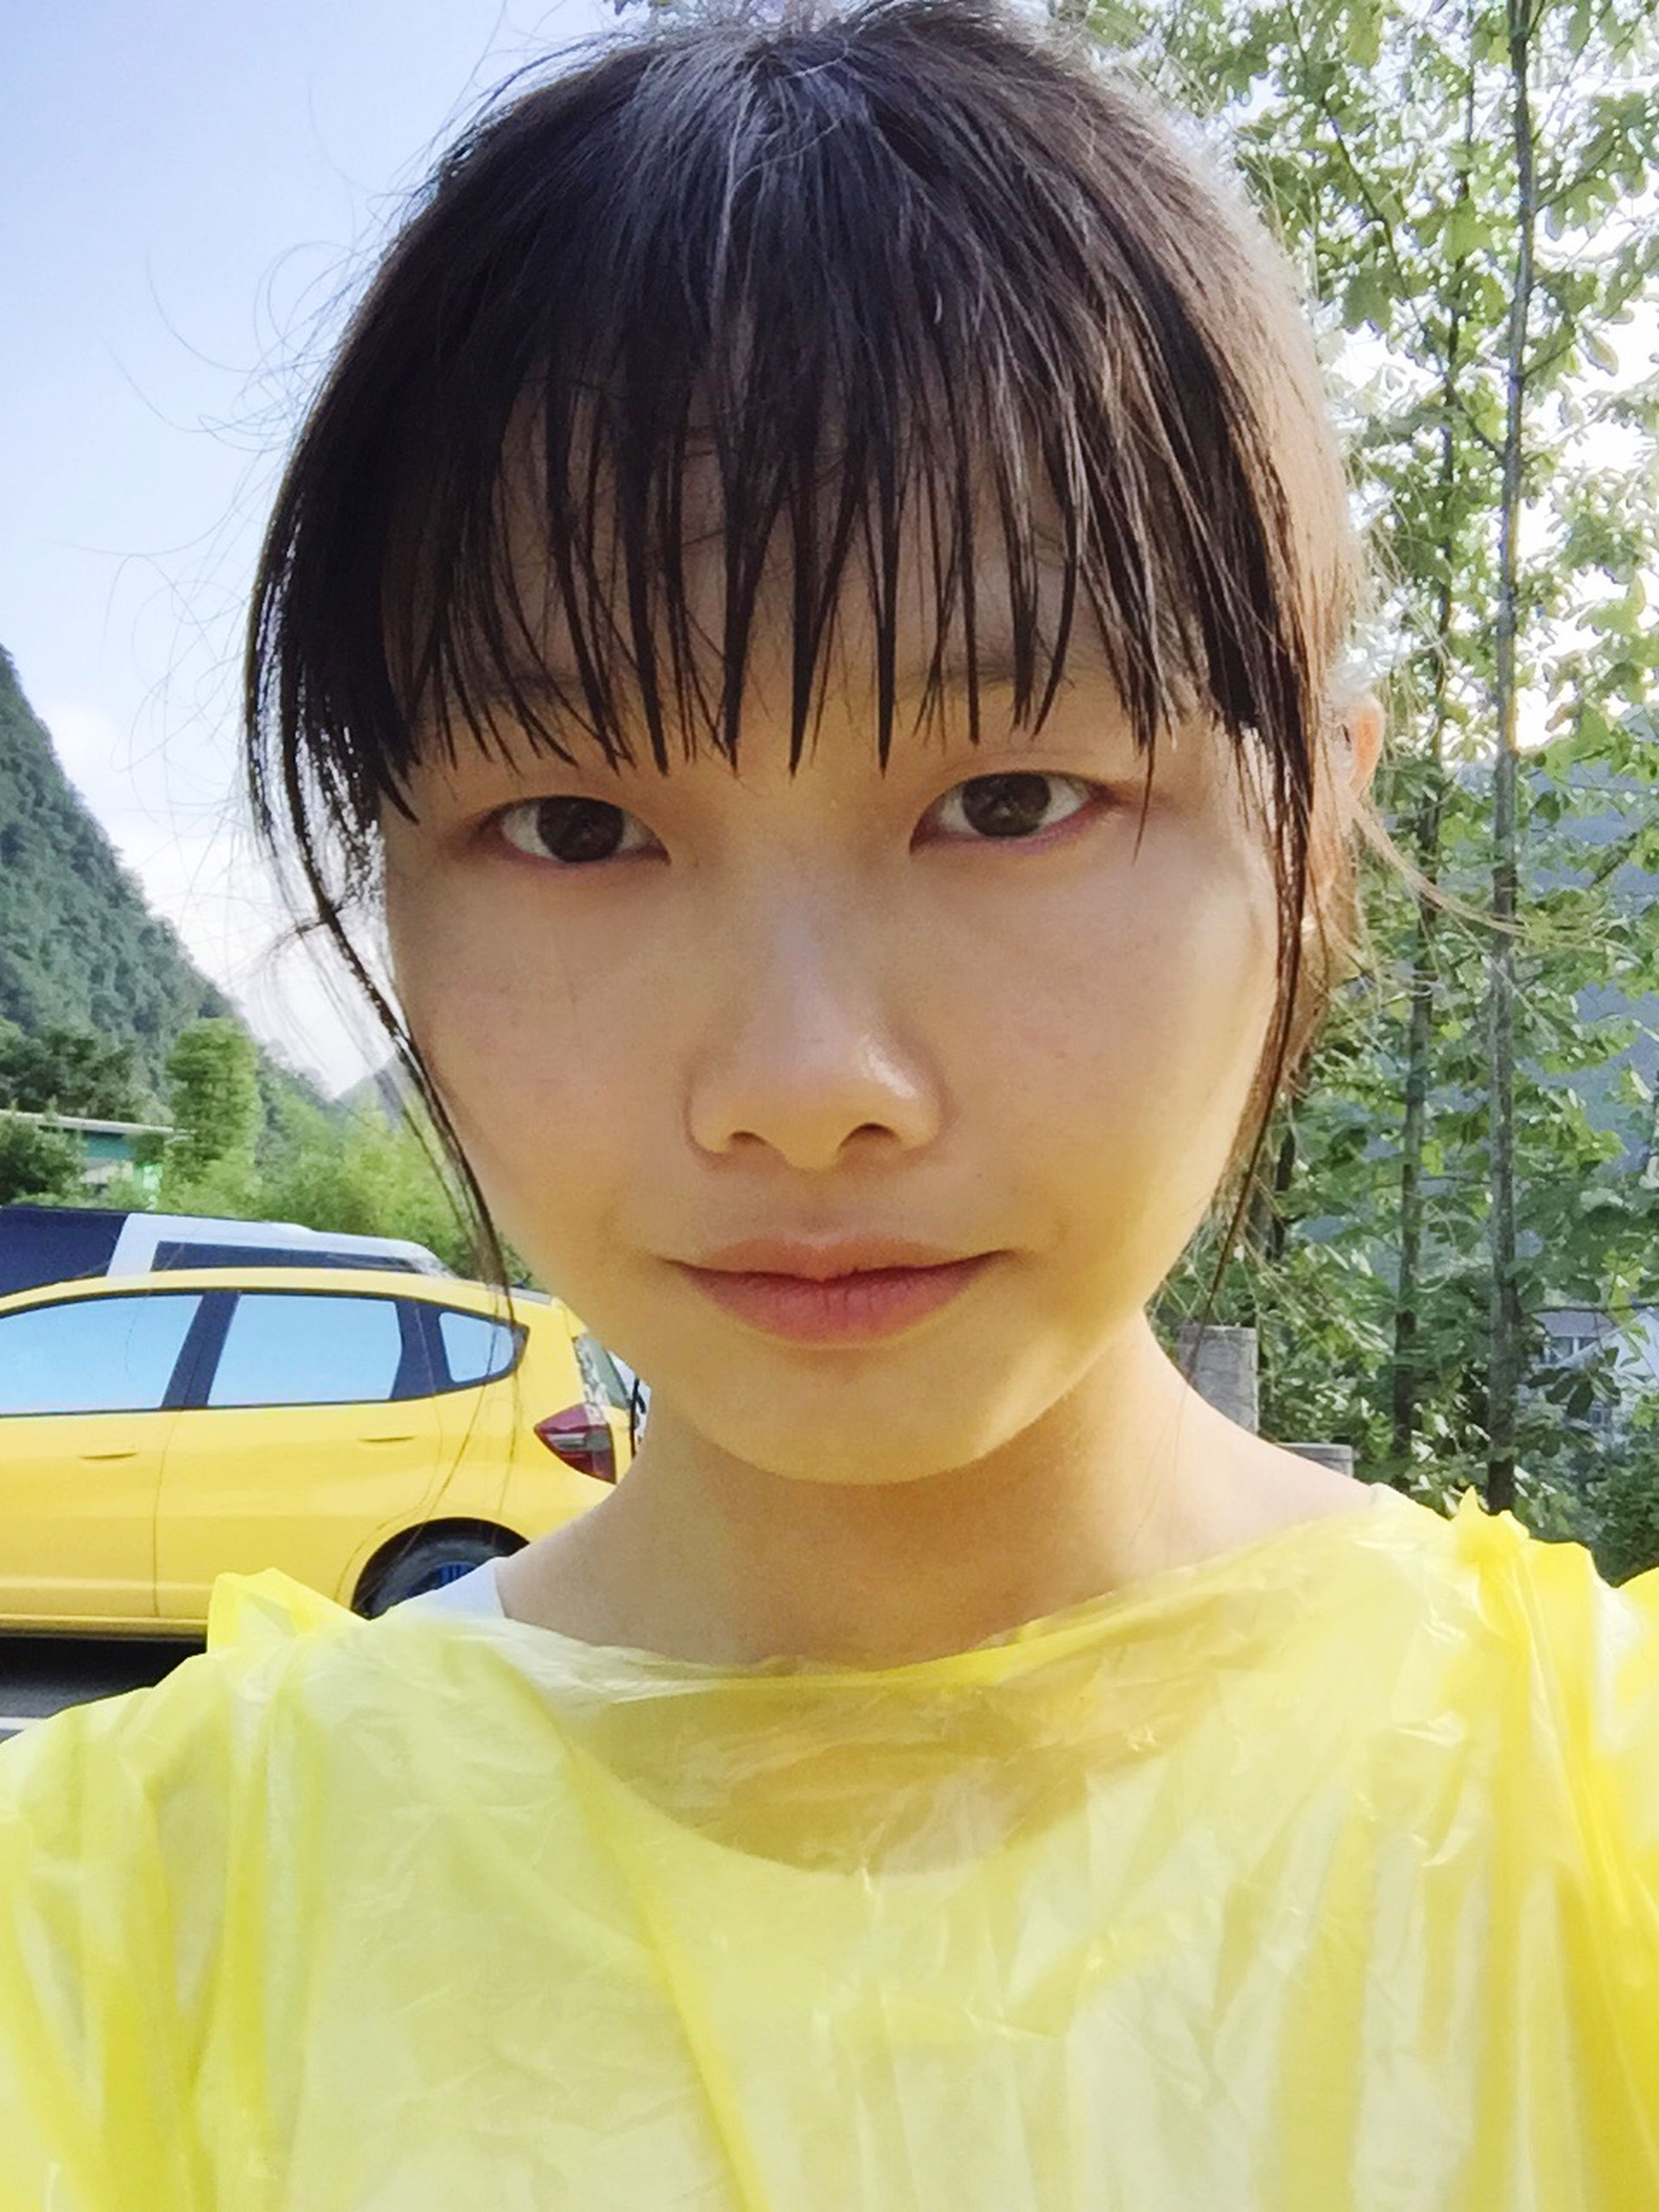 person, childhood, elementary age, lifestyles, headshot, looking at camera, portrait, cute, girls, innocence, leisure activity, close-up, front view, casual clothing, focus on foreground, boys, smiling, yellow